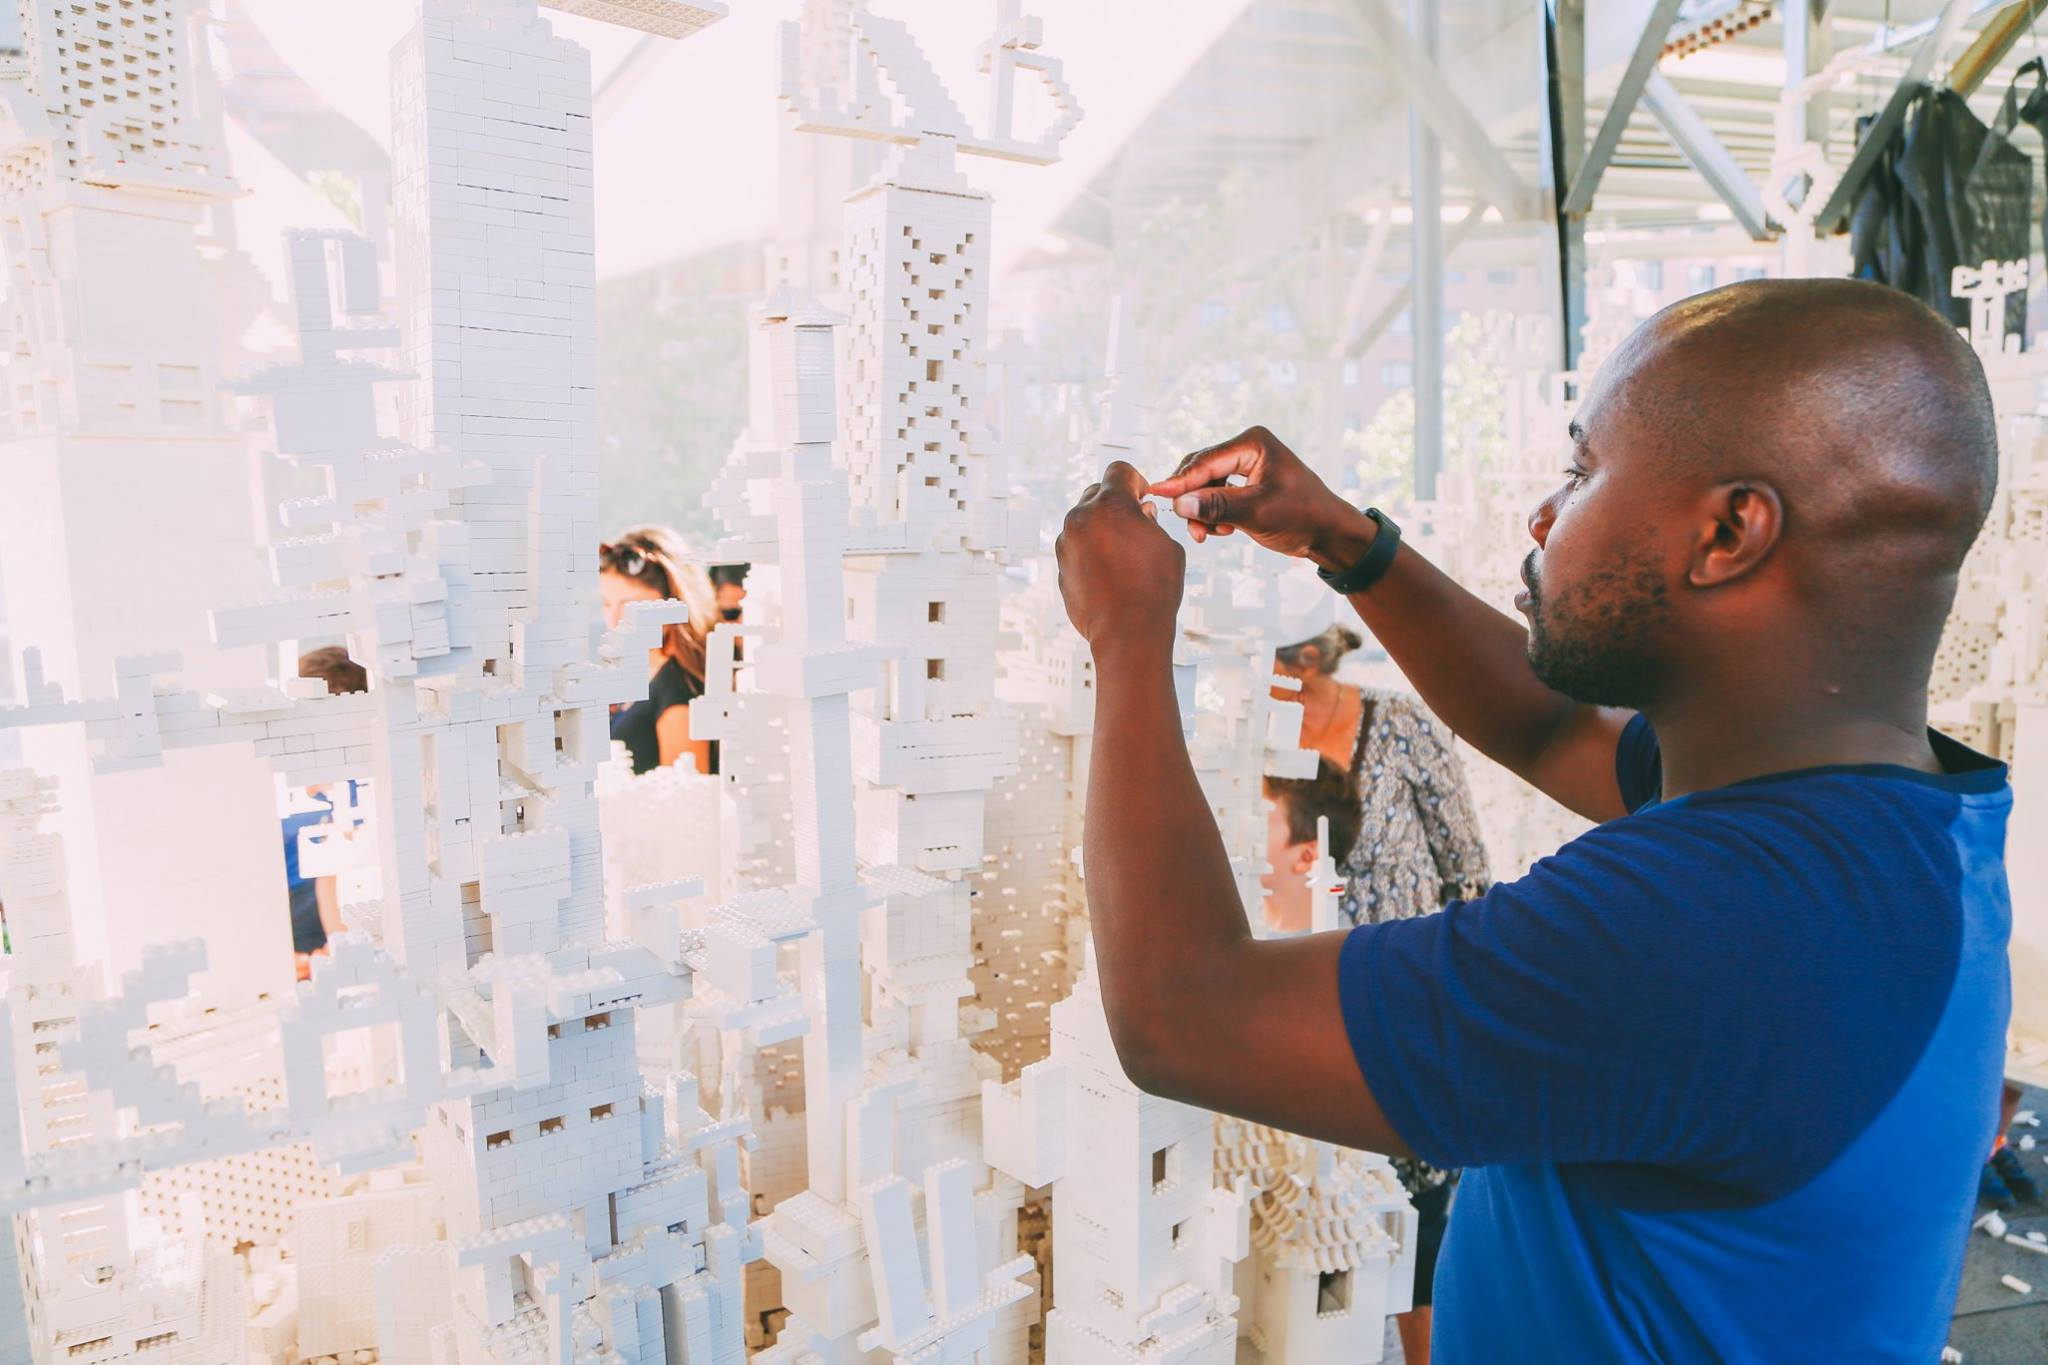 New York Diary: The High Line, Lego House And New York Fashion Week (14)